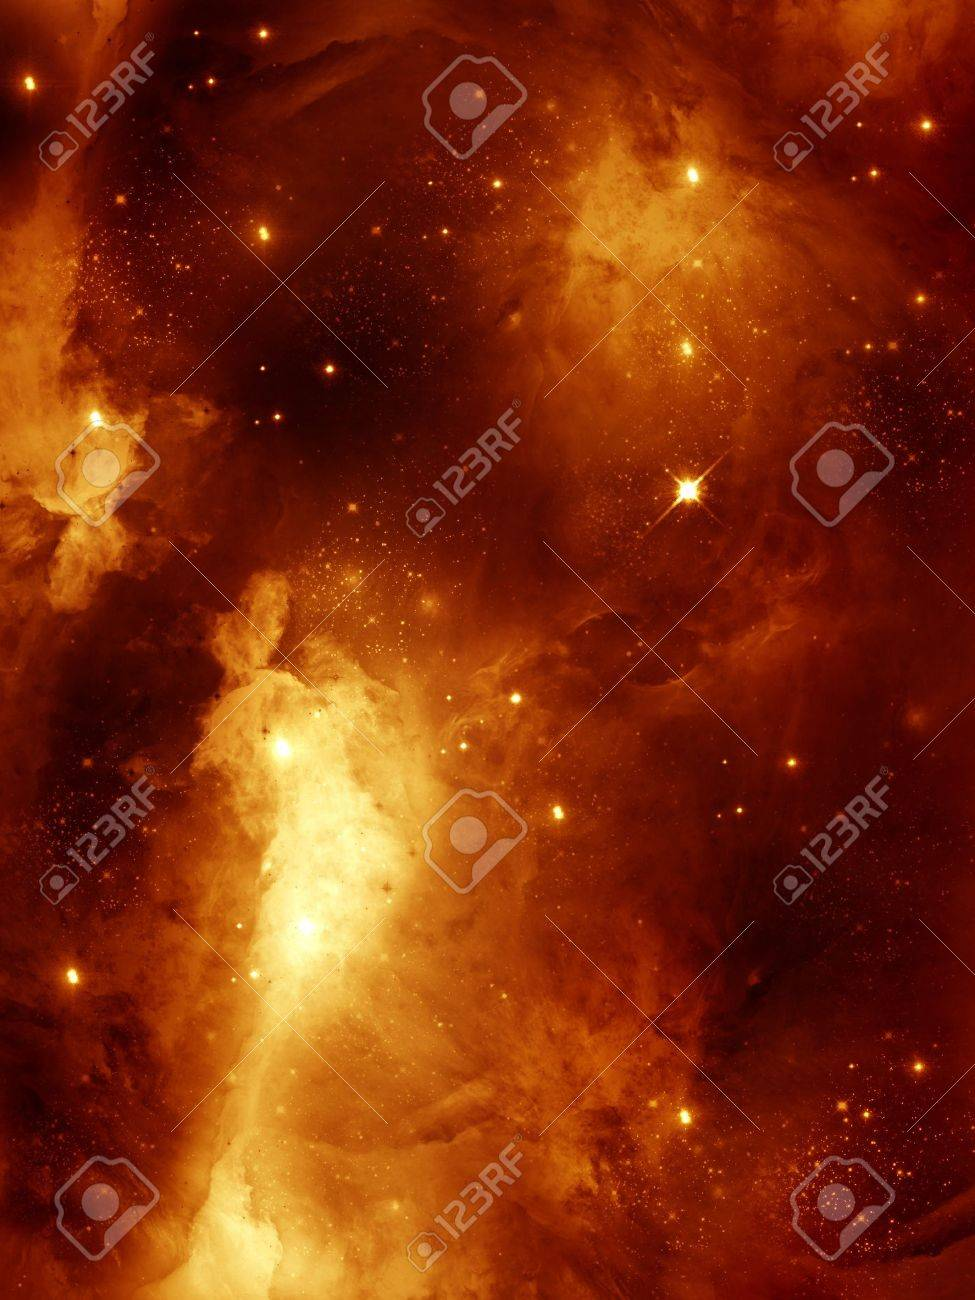 colourful space starfield nebula and planet in red Stock Photo - 14548253